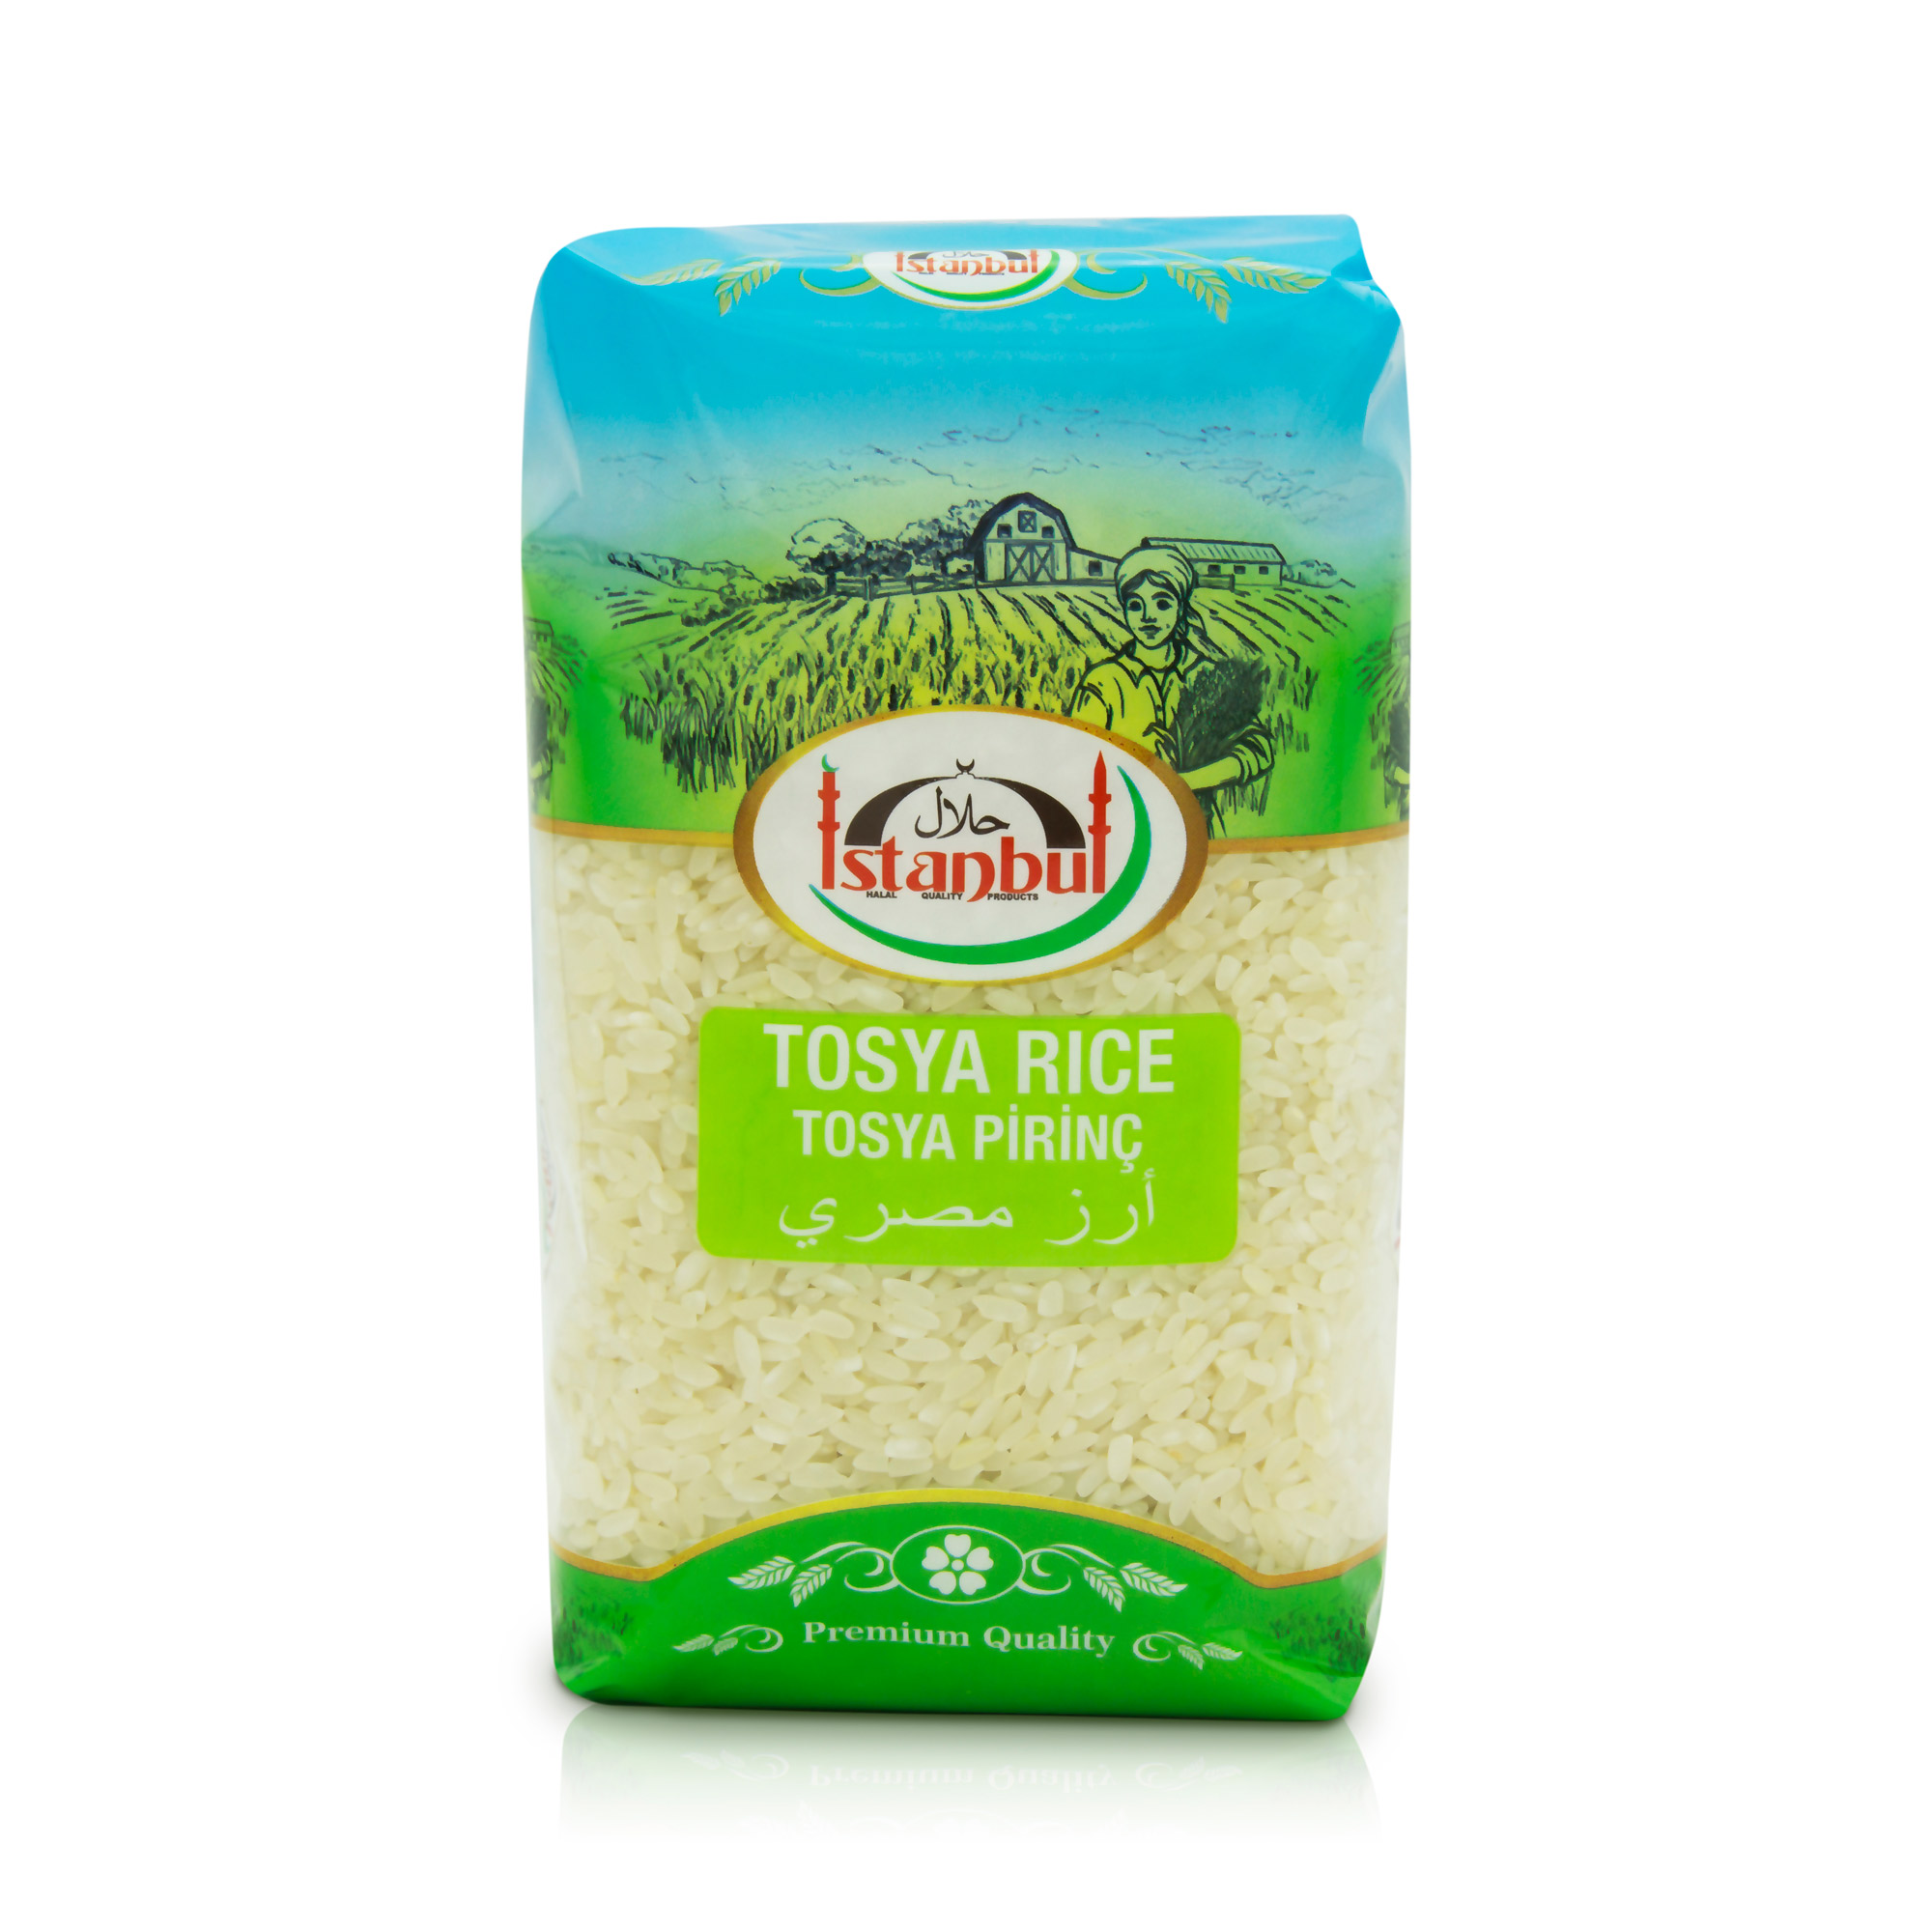 Istanbul Tosya Rice 1kg